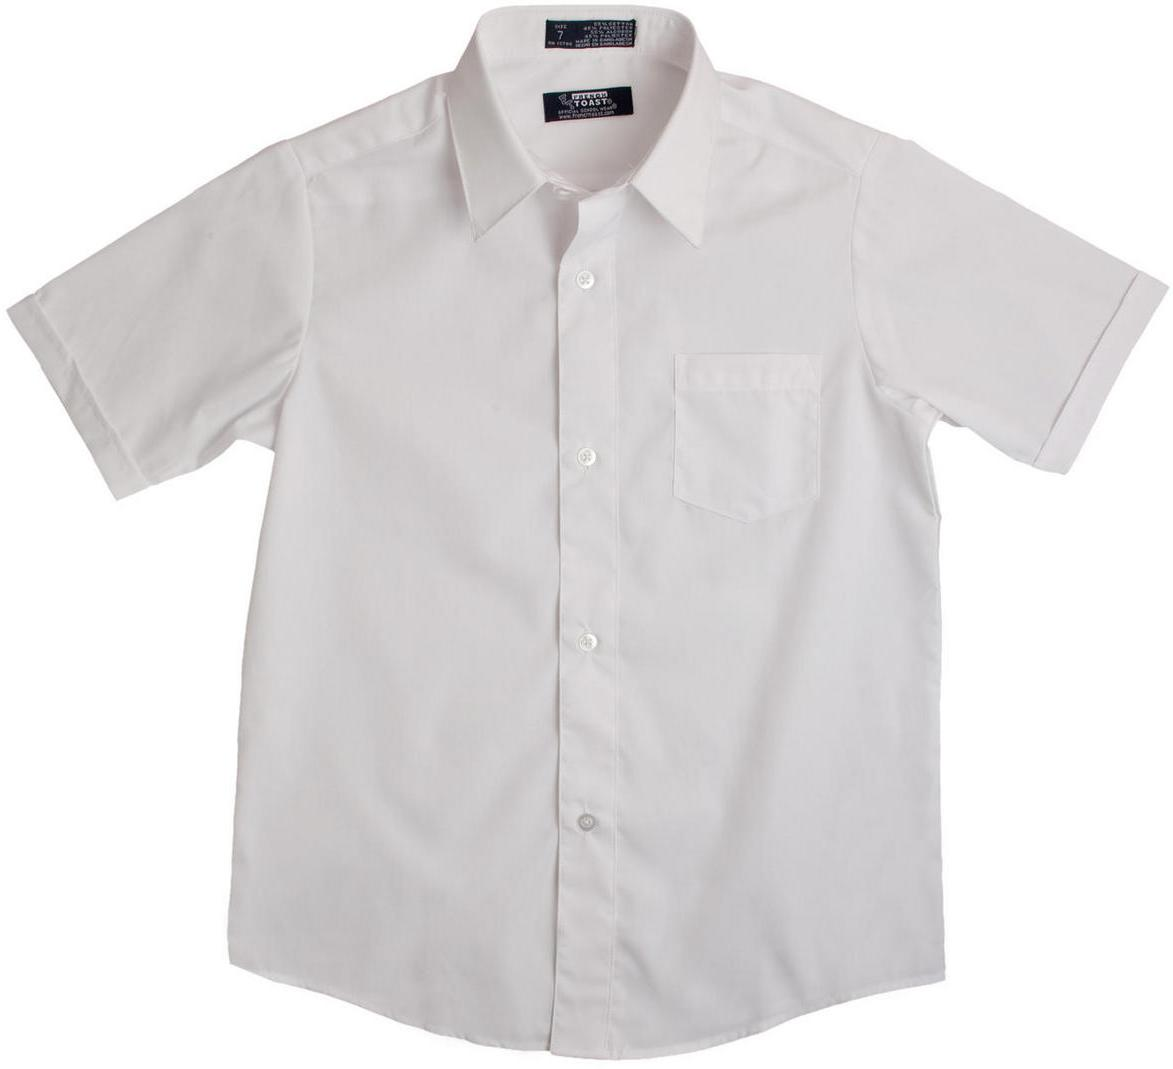 Shop eacvuazs.ga for Boys' Shirts and see our entire selection of Dress Shirts, Boys' Collar Shirts, Linen Shirts and Oxford Shirts. Free Shipping on all orders!